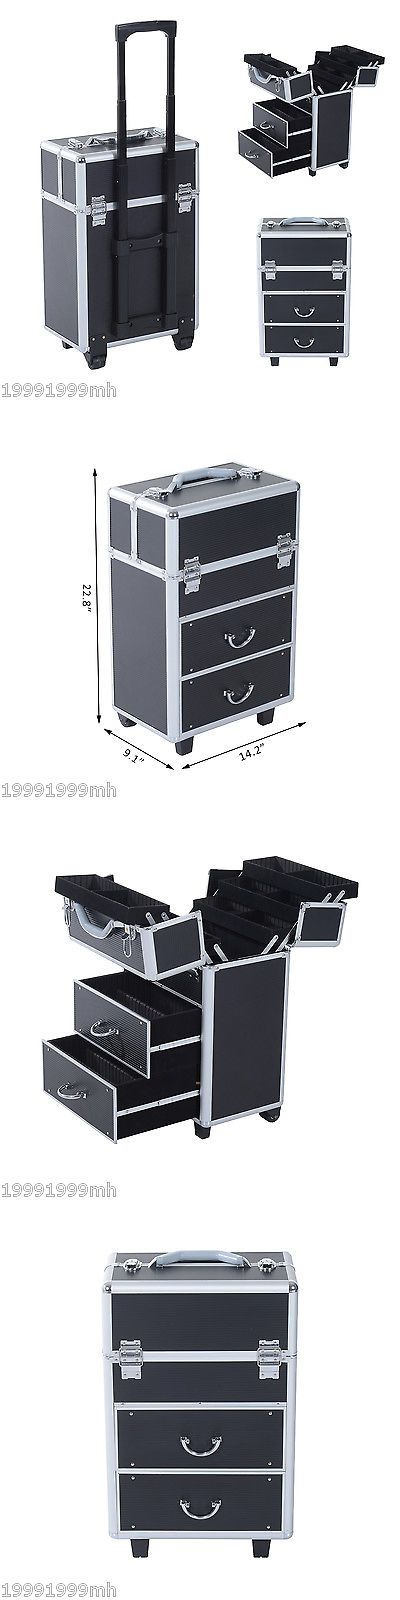 Rolling Makeup Cases: Soozier Rolling Makeup Case Train Cosmetic Jewelry Organizer W Drawers Black -> BUY IT NOW ONLY: $119.99 on eBay!